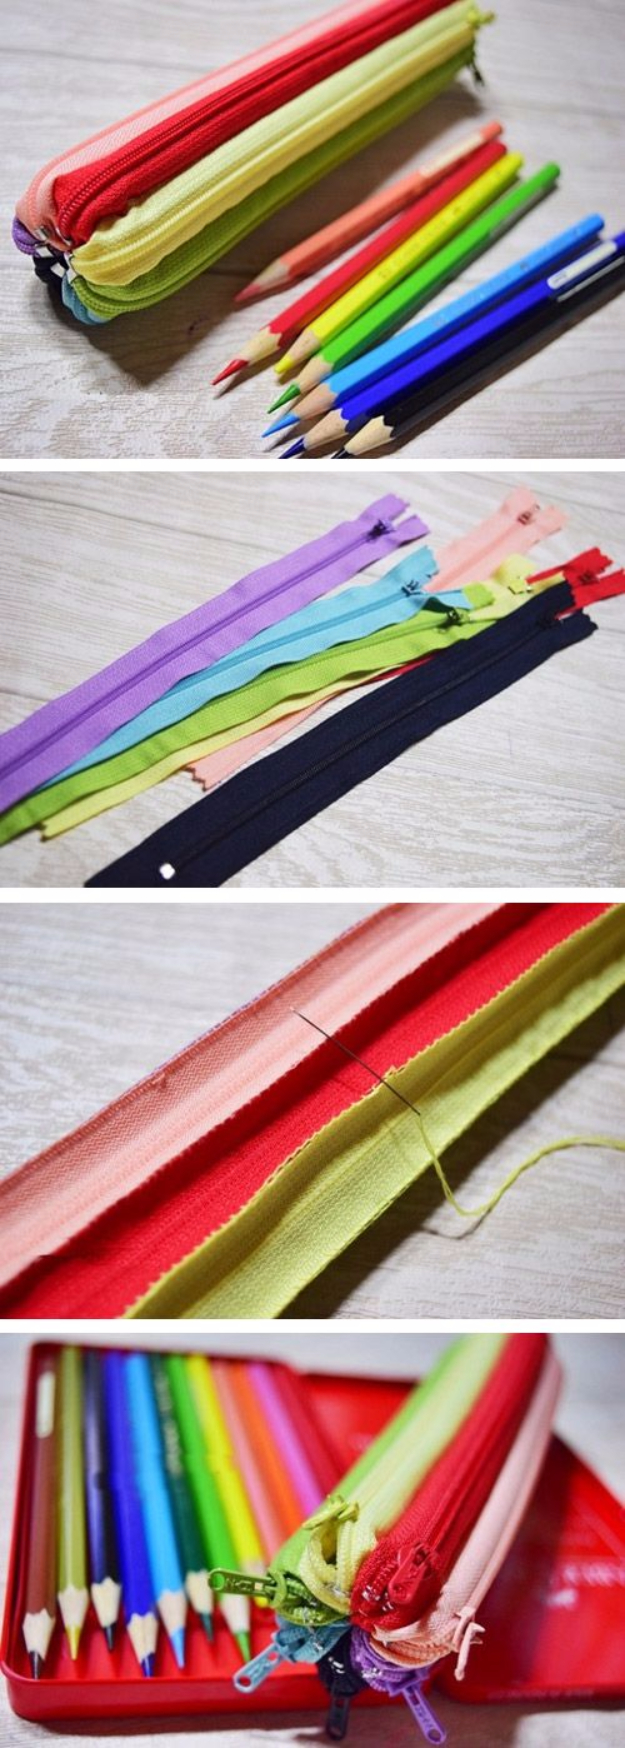 Creative DIY Projects With Zippers - Zipper Pencil Case - Easy Crafts and Fashion Ideas With A Zipper - Jewelry, Home Decor, School Supplies and DIY Gift Ideas - Quick DIYs for Fun Weekend Projects http://diyjoy.com/diy-projects-zippers